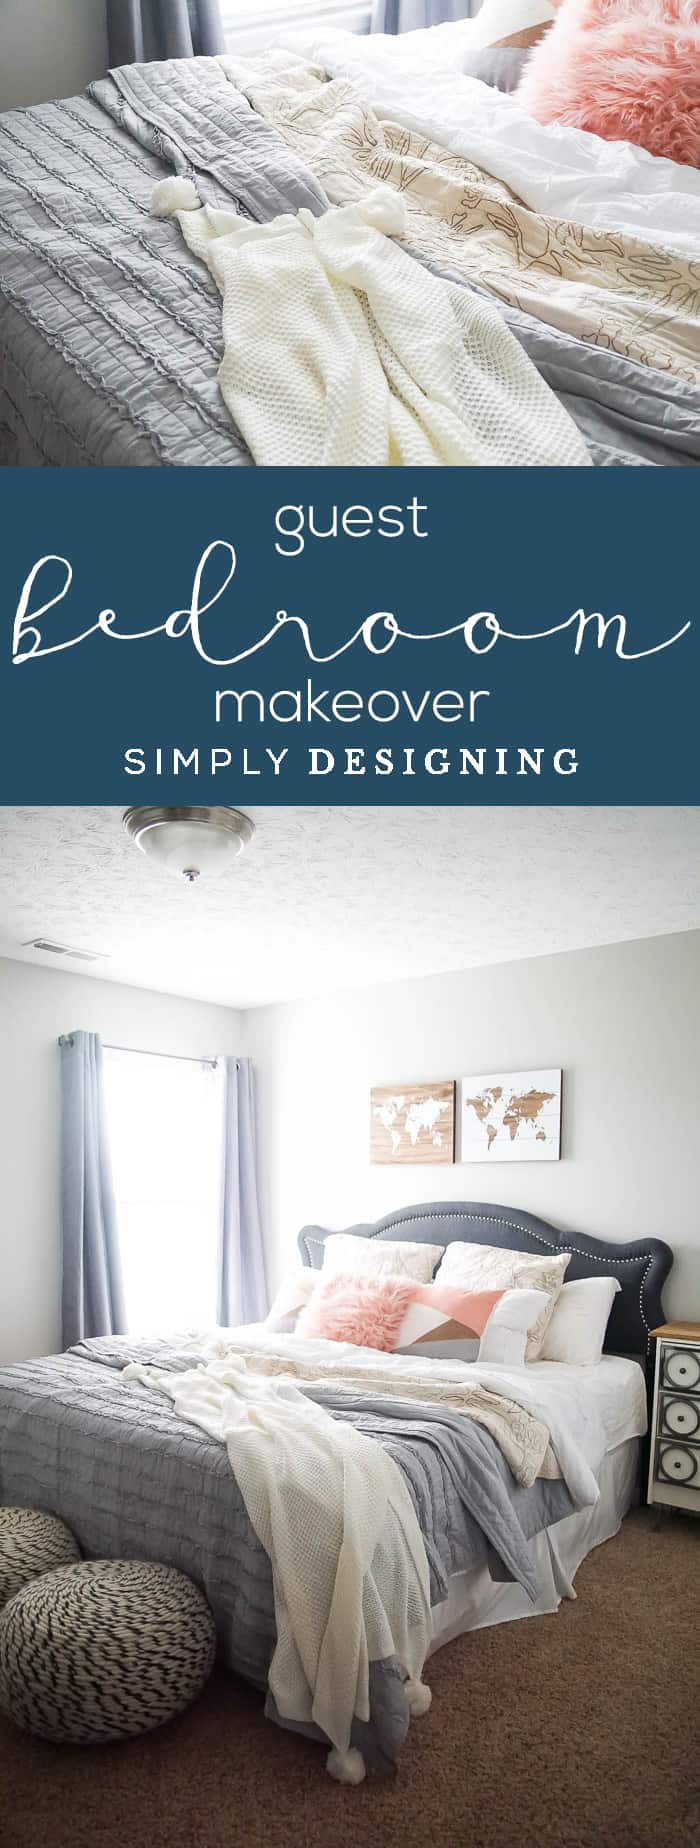 Guest Bedroom Makeover - Layer bedding and pillow - make a guest room comfortable - bedroom makeover before and after